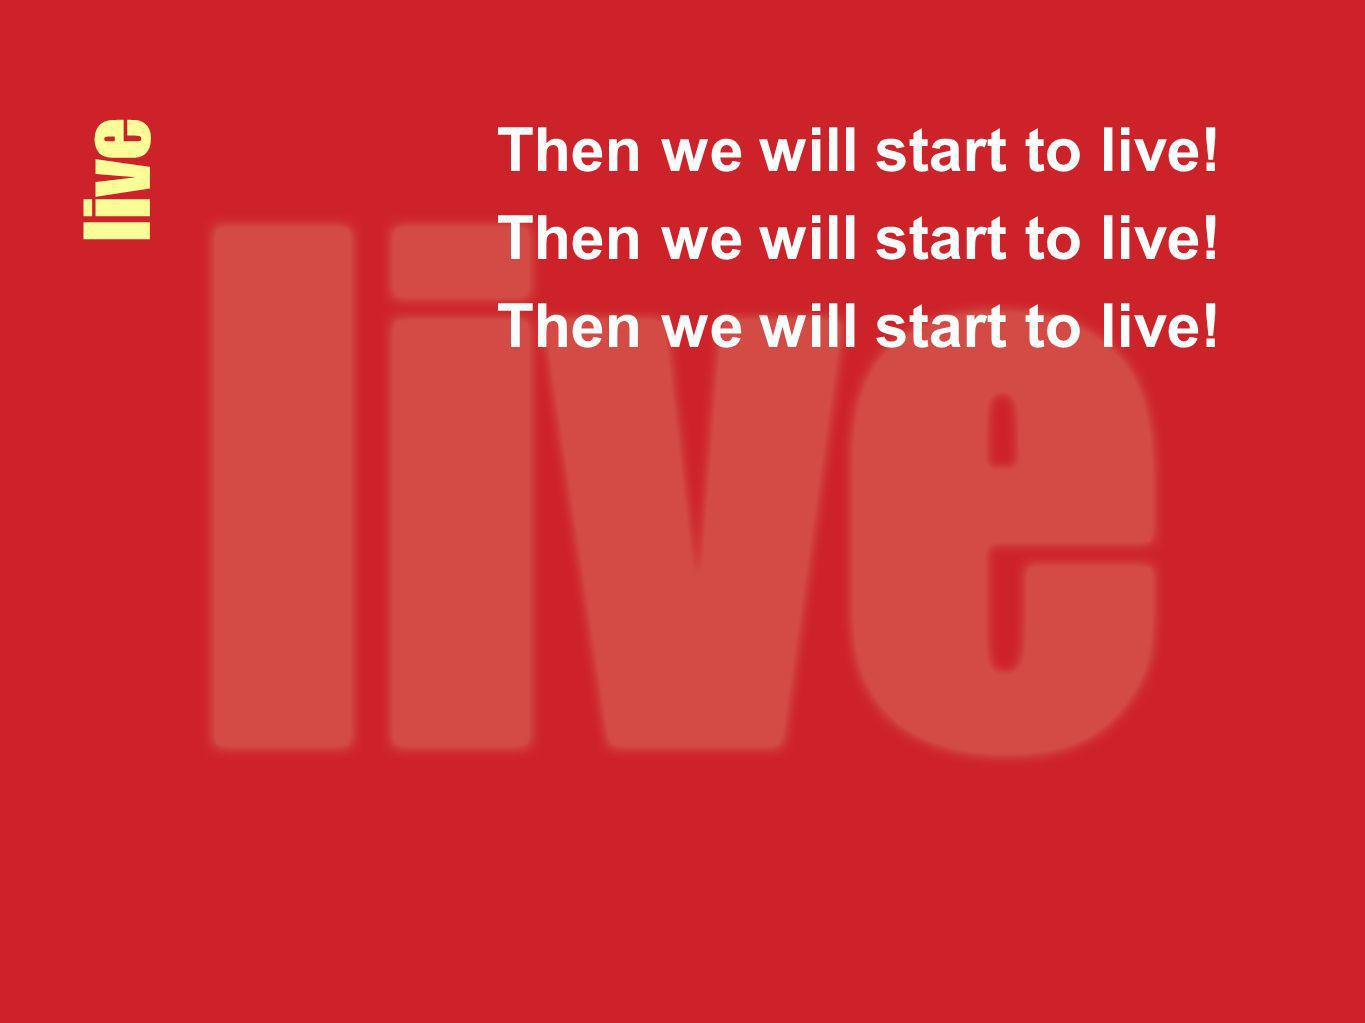 Then we will start to live!